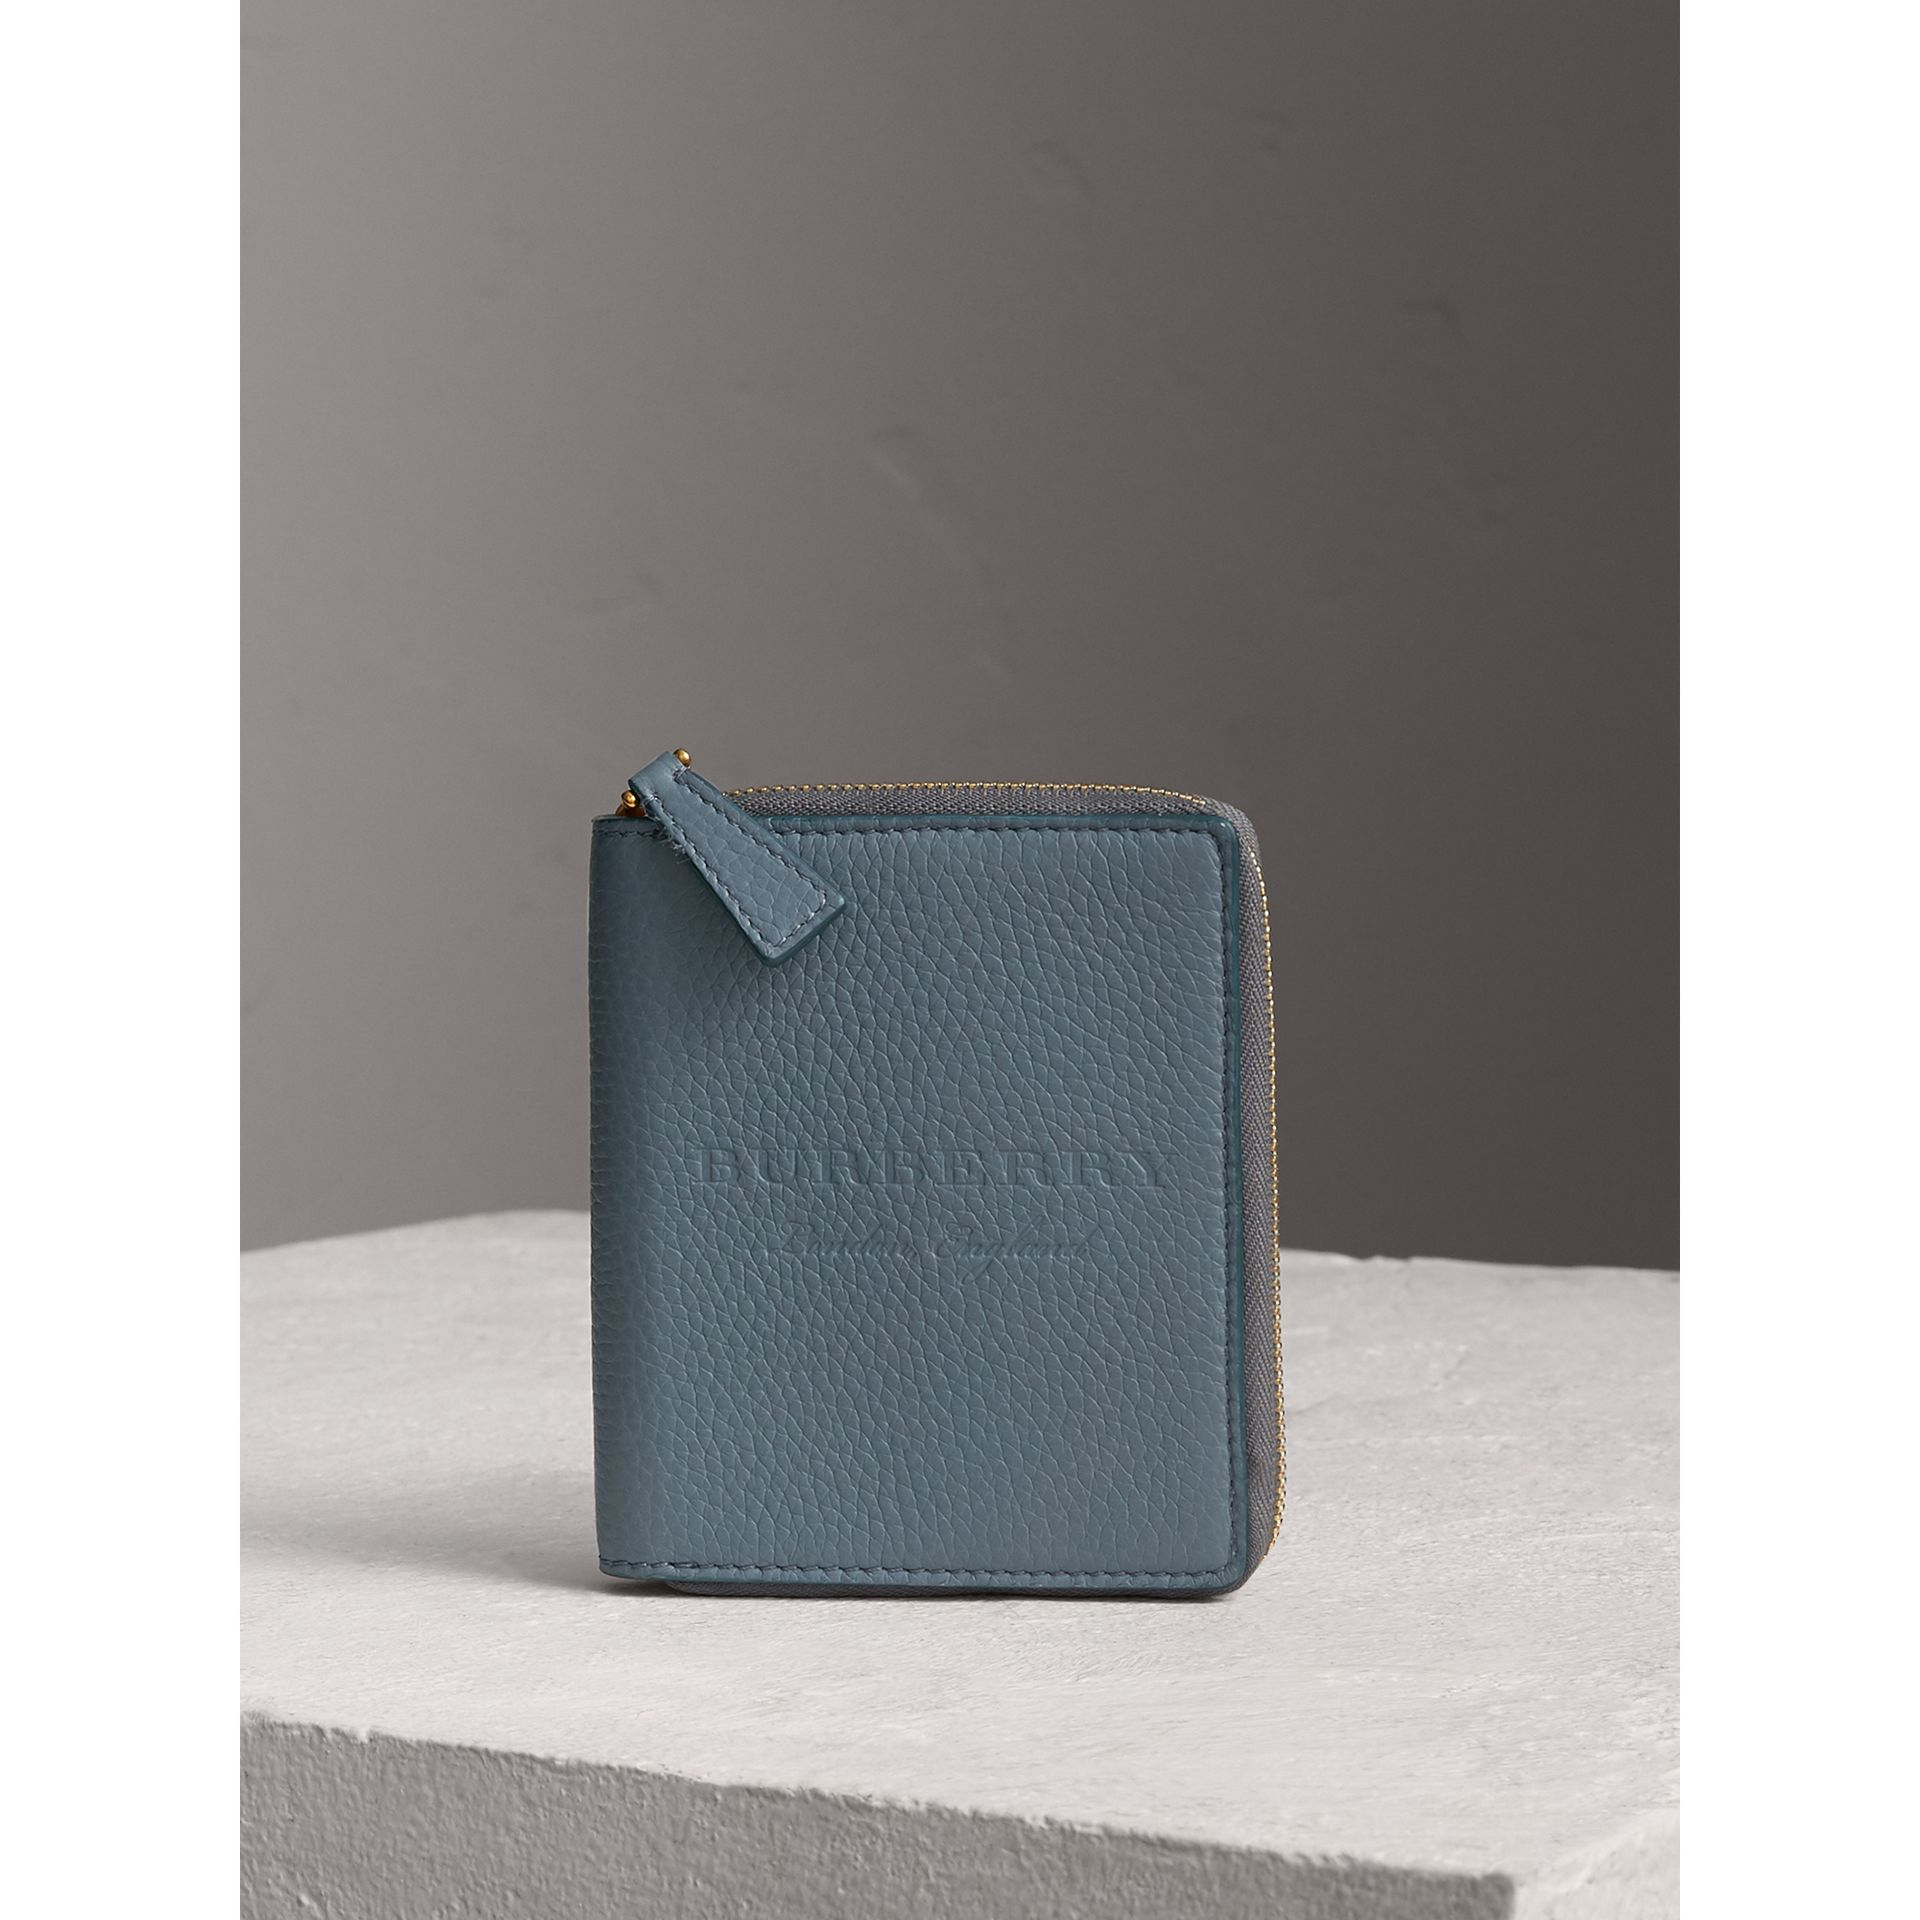 Embossed Grainy Leather Ziparound A6 Notebook Case in Dusty Teal Blue | Burberry United Kingdom - gallery image 4